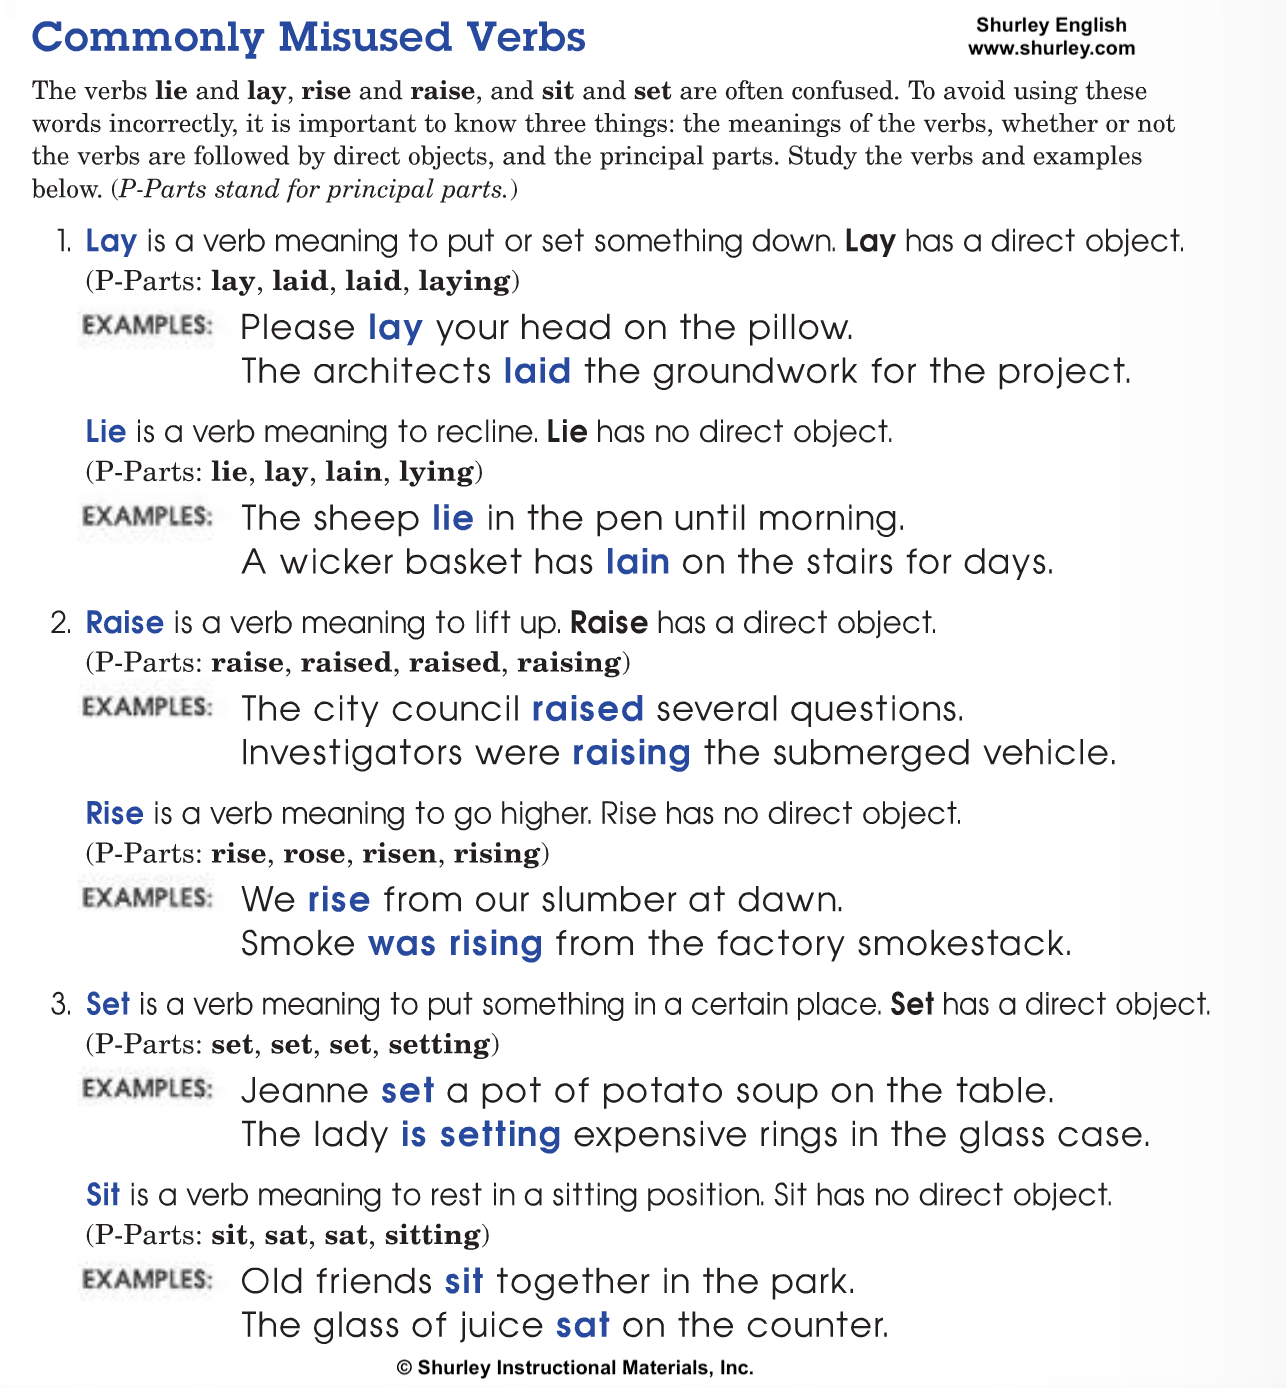 Commonly Misused Verbs Shurley English.png